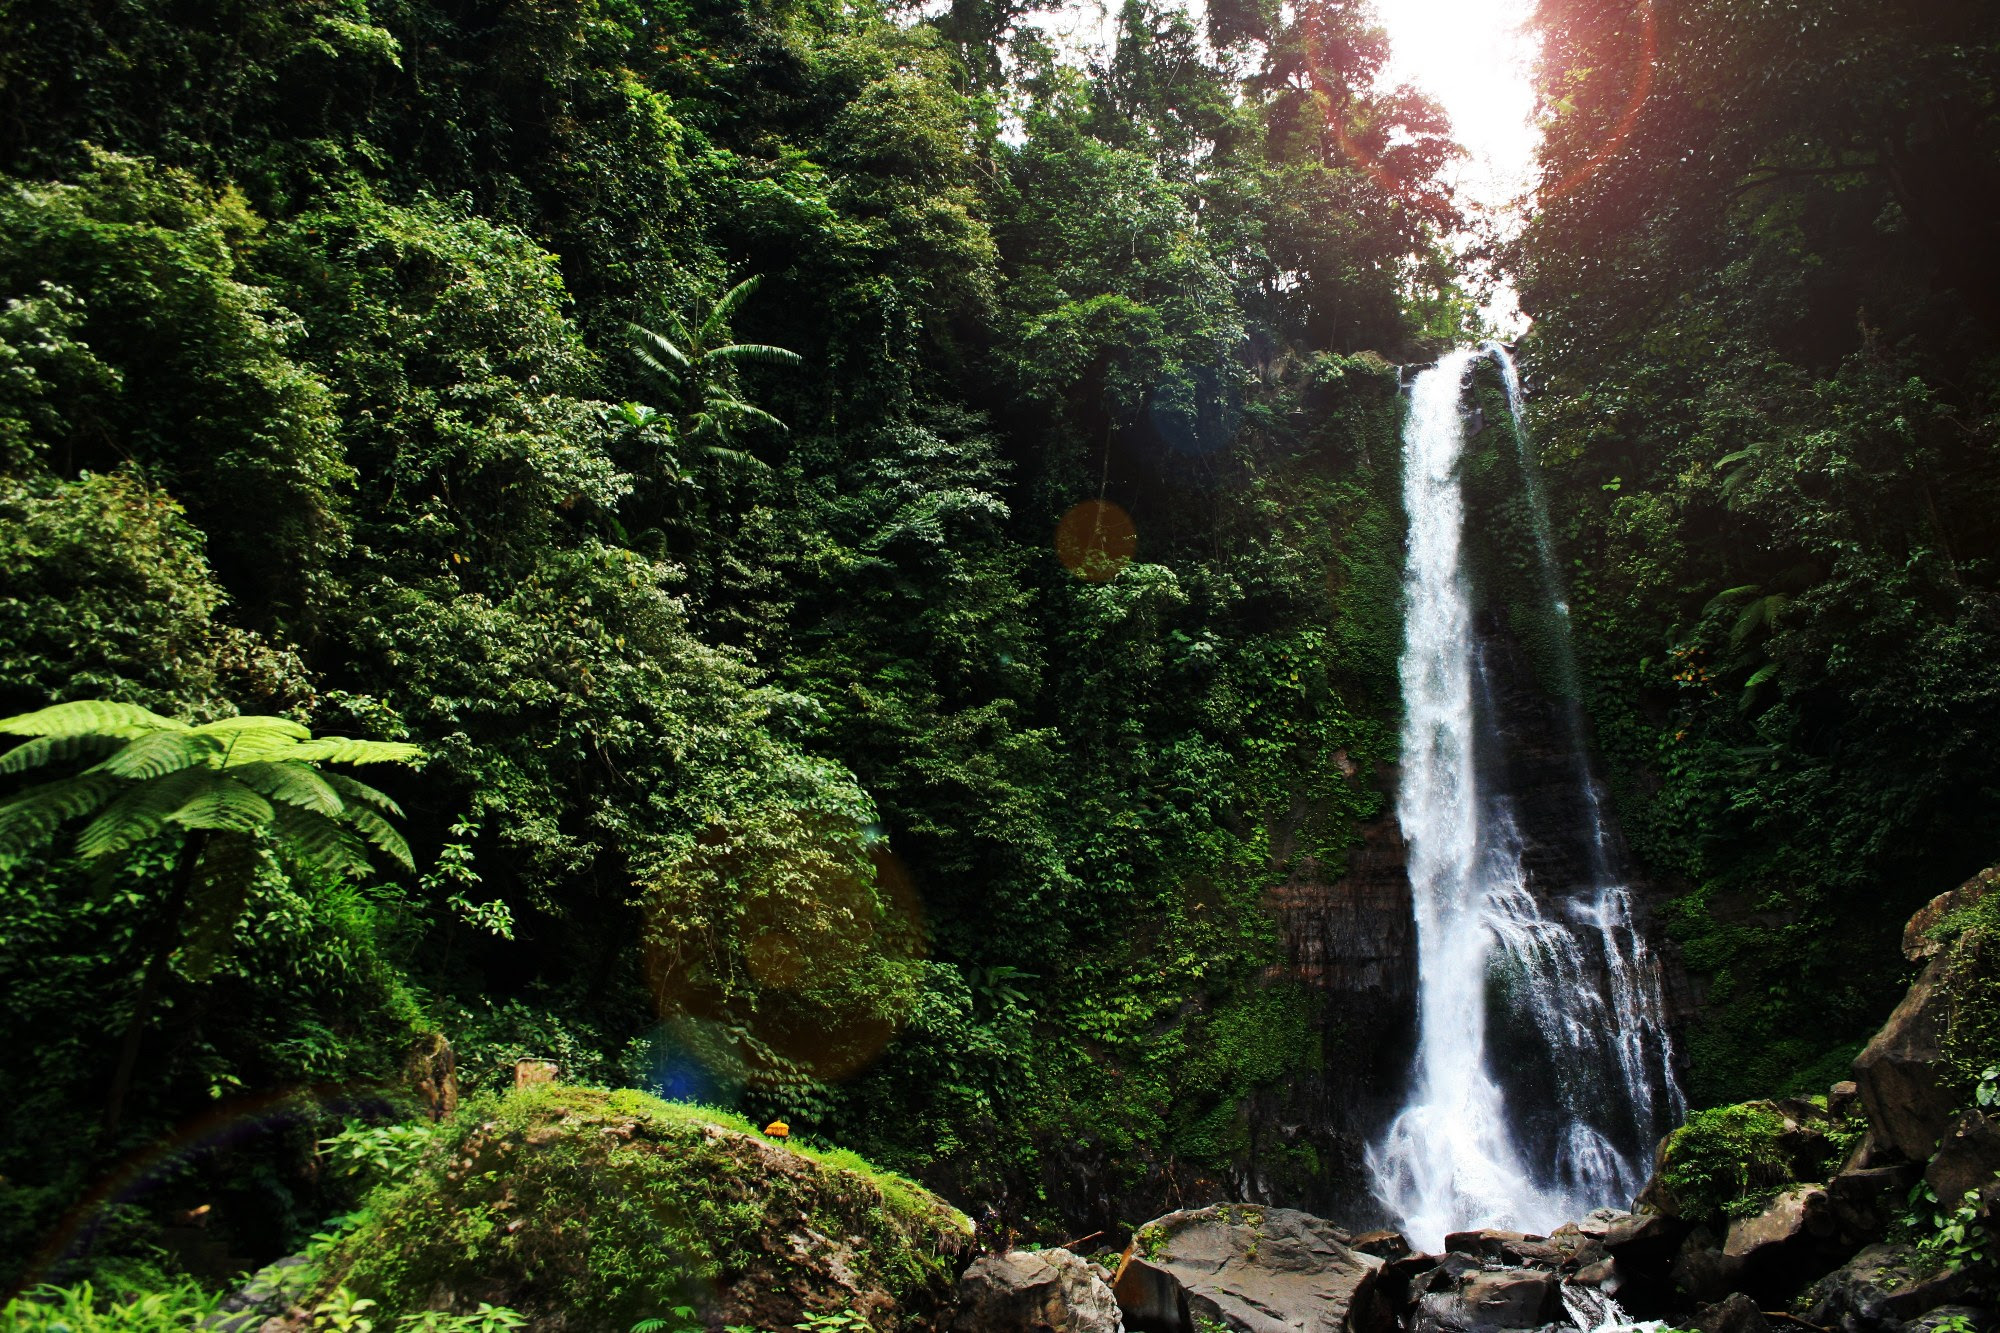 Gitgit Waterfall Bali Location Map,Location Map of Gitgit Waterfall Bali,Gitgit Waterfall Bali accommodation destinations attractions hotels resorts map reviews photos pictures